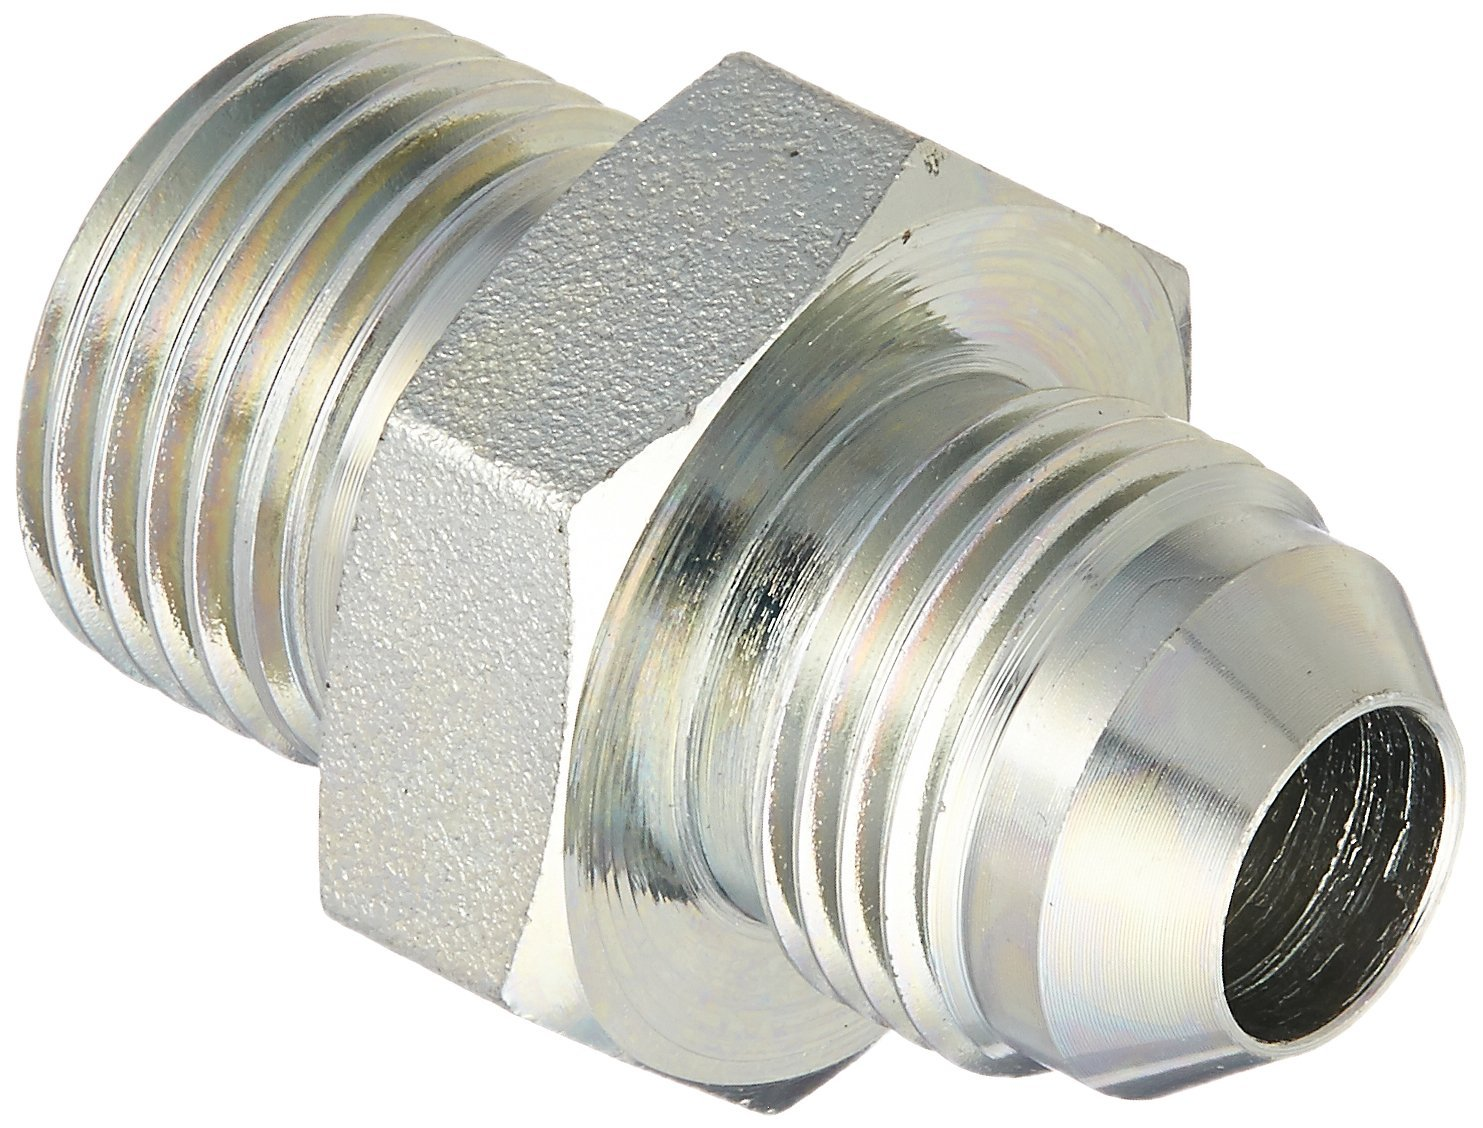 3//4-16 Male JIC x 1//2-14 Male BSPP 3//4-16 Male JIC x 1//2-14 Male BSPP Inc. Brennan Industries 7002-08-08 Steel Straight Conversion Adapter Fitting